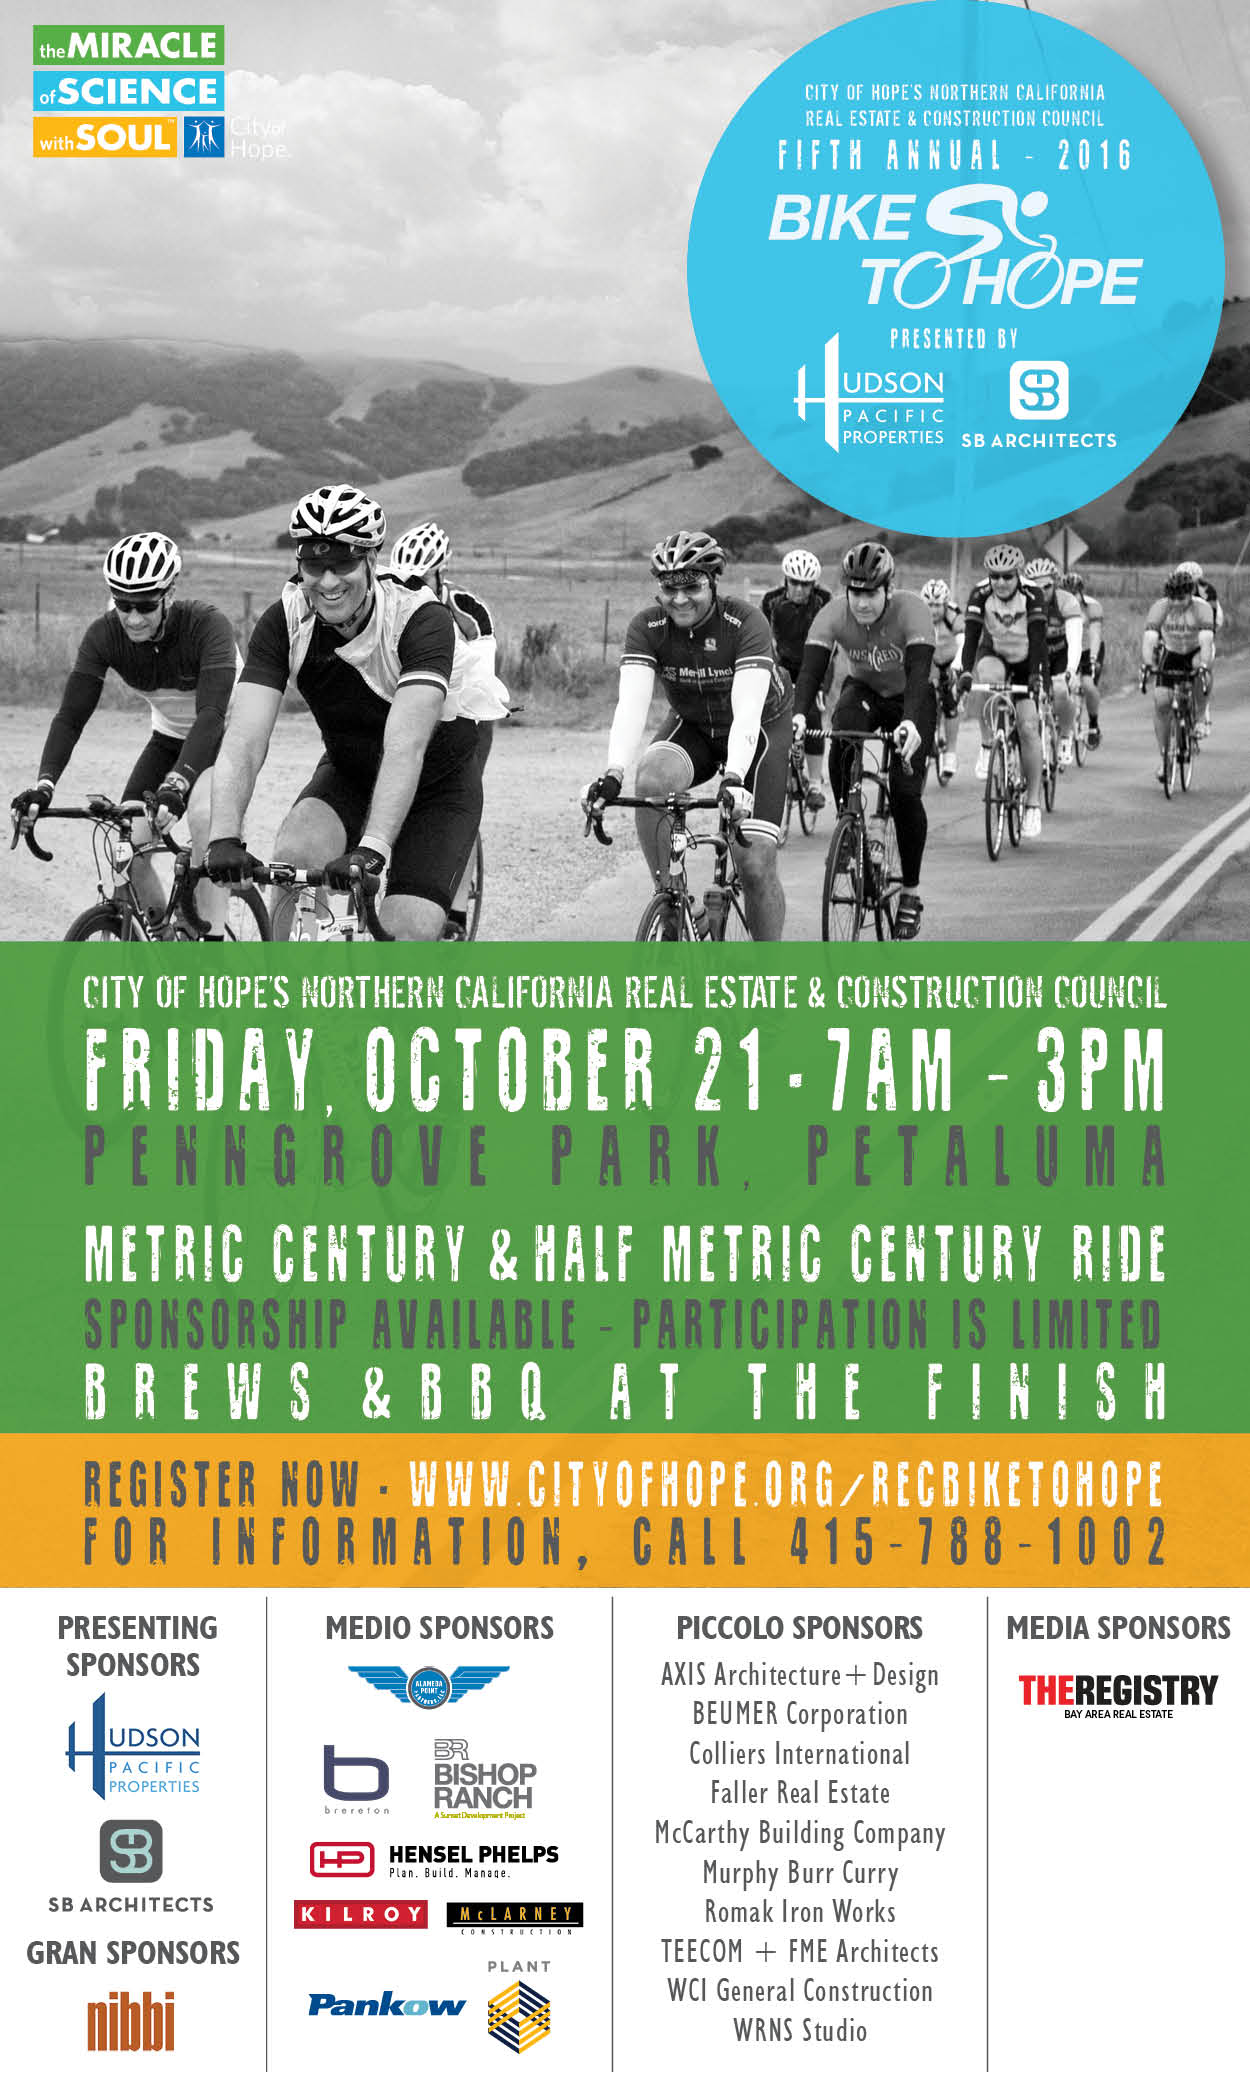 bike-to-hope-2016-ad-300x500-registry-9-14-16